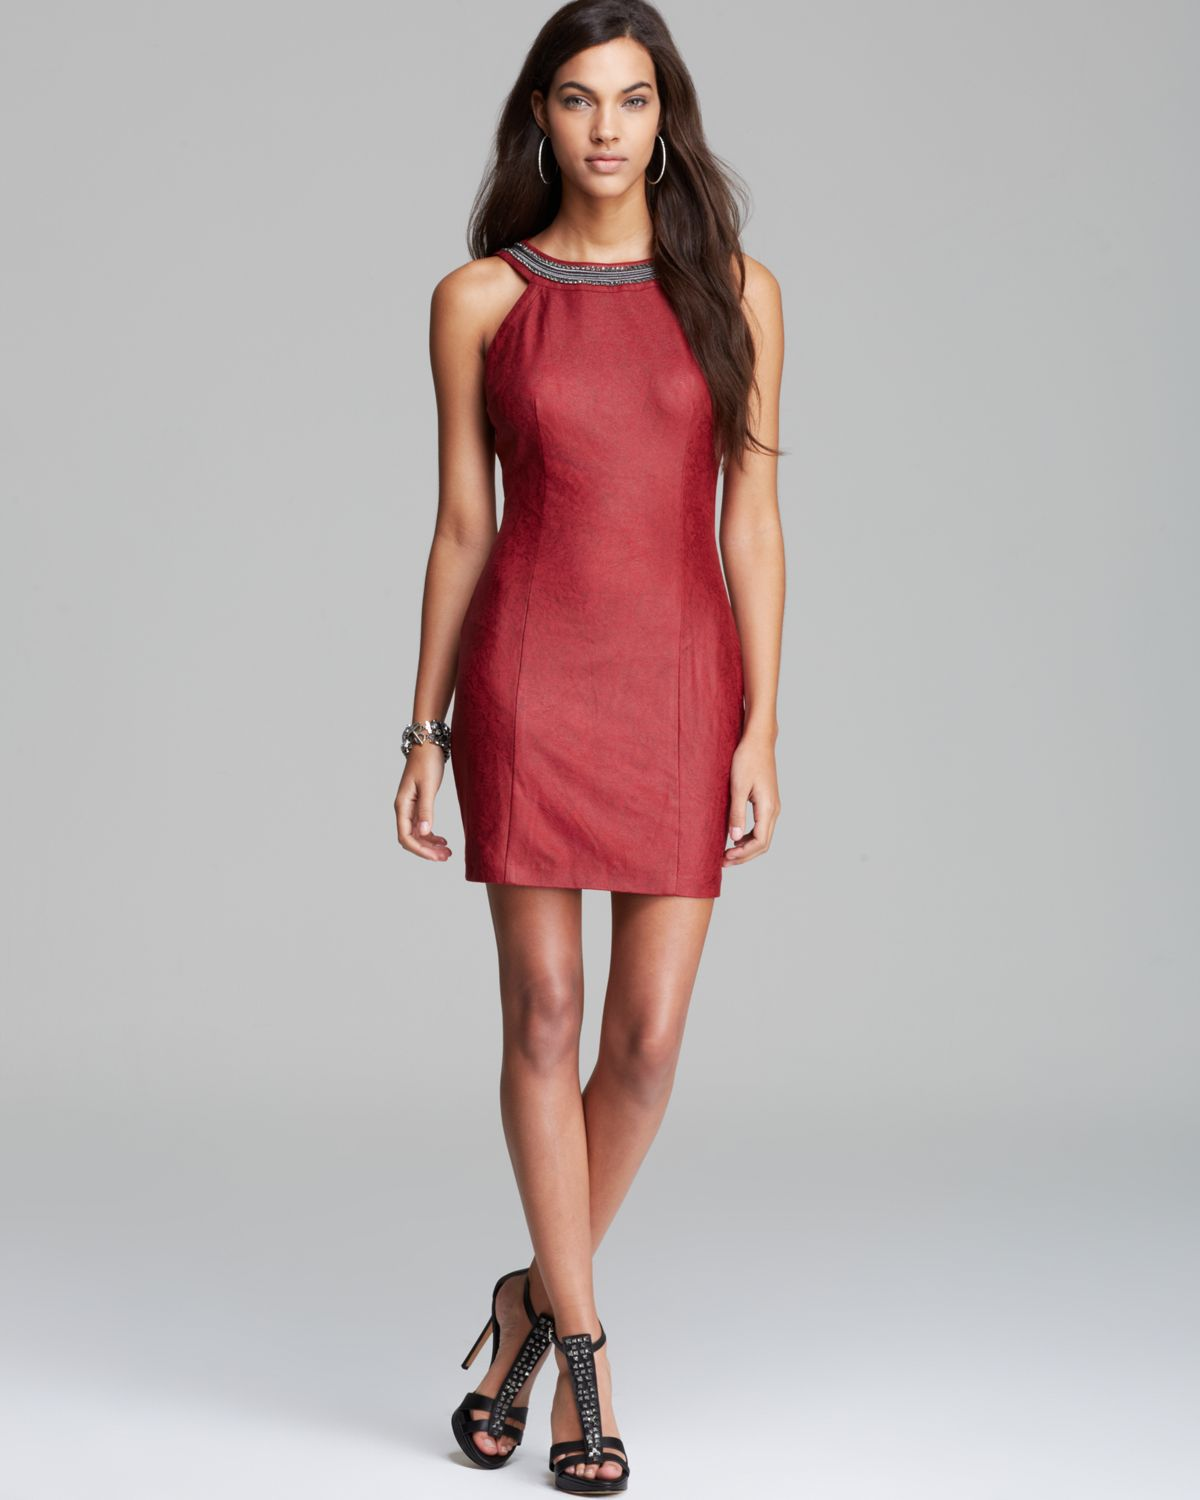 Guess Dress Embellished Faux Leather in Red | Lyst